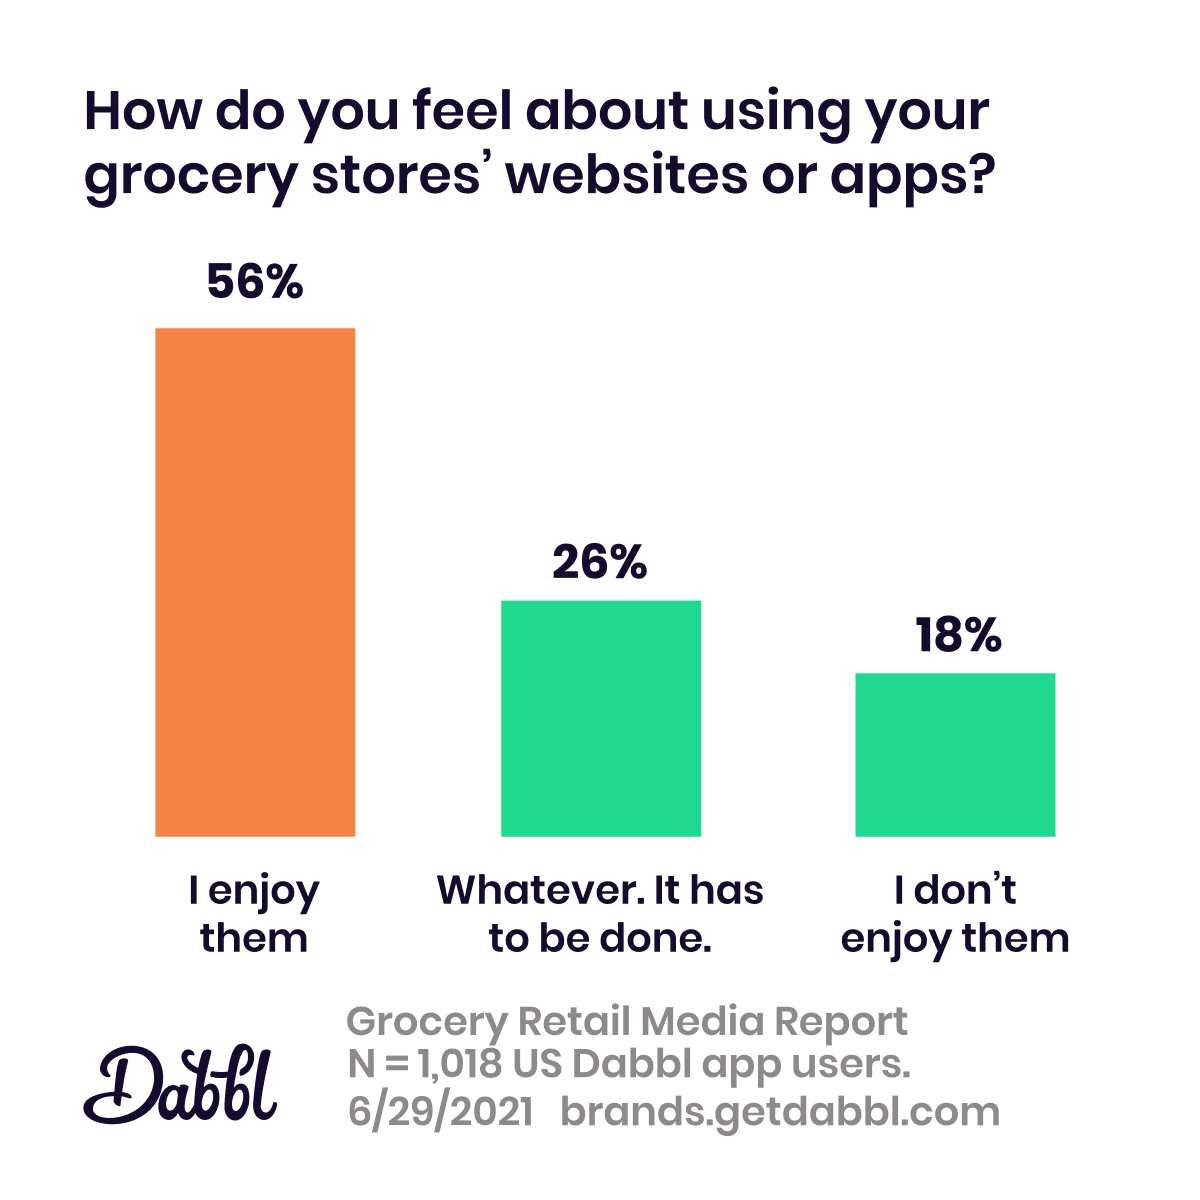 Dabbl Grocery Retail Media Report: grocers' digital property sentiment